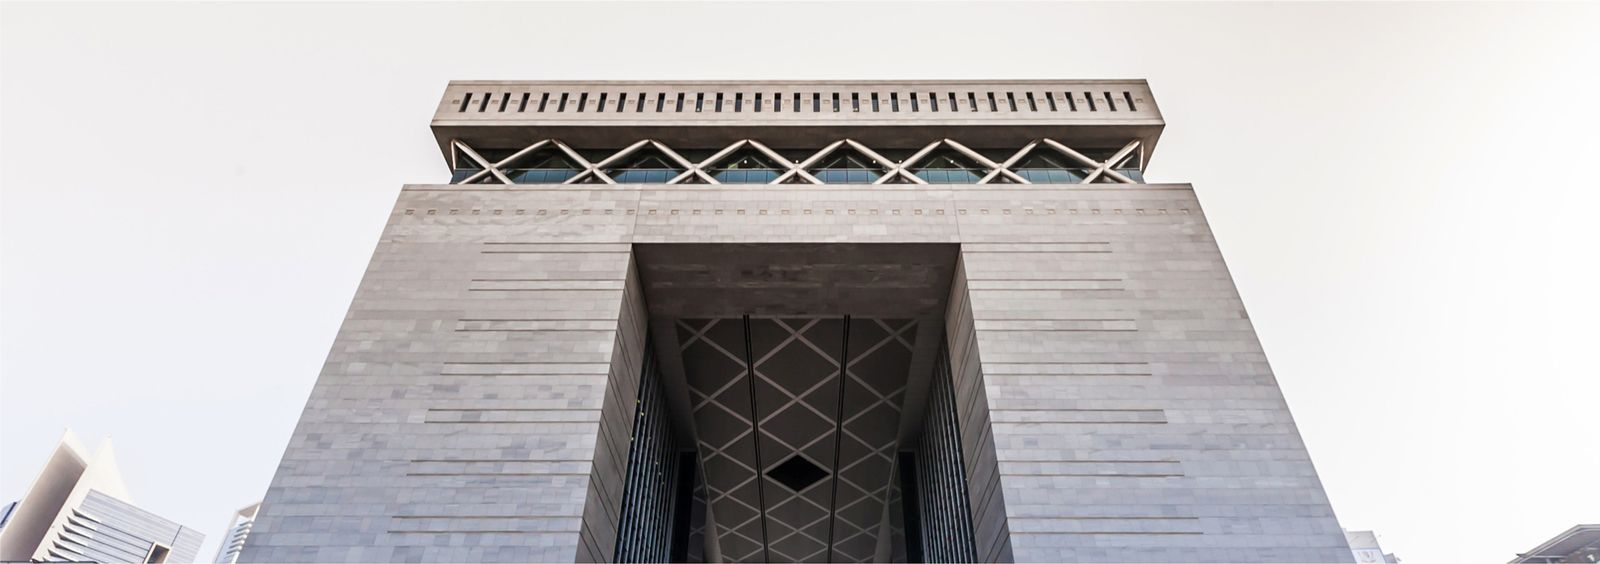 DIFC on the Map